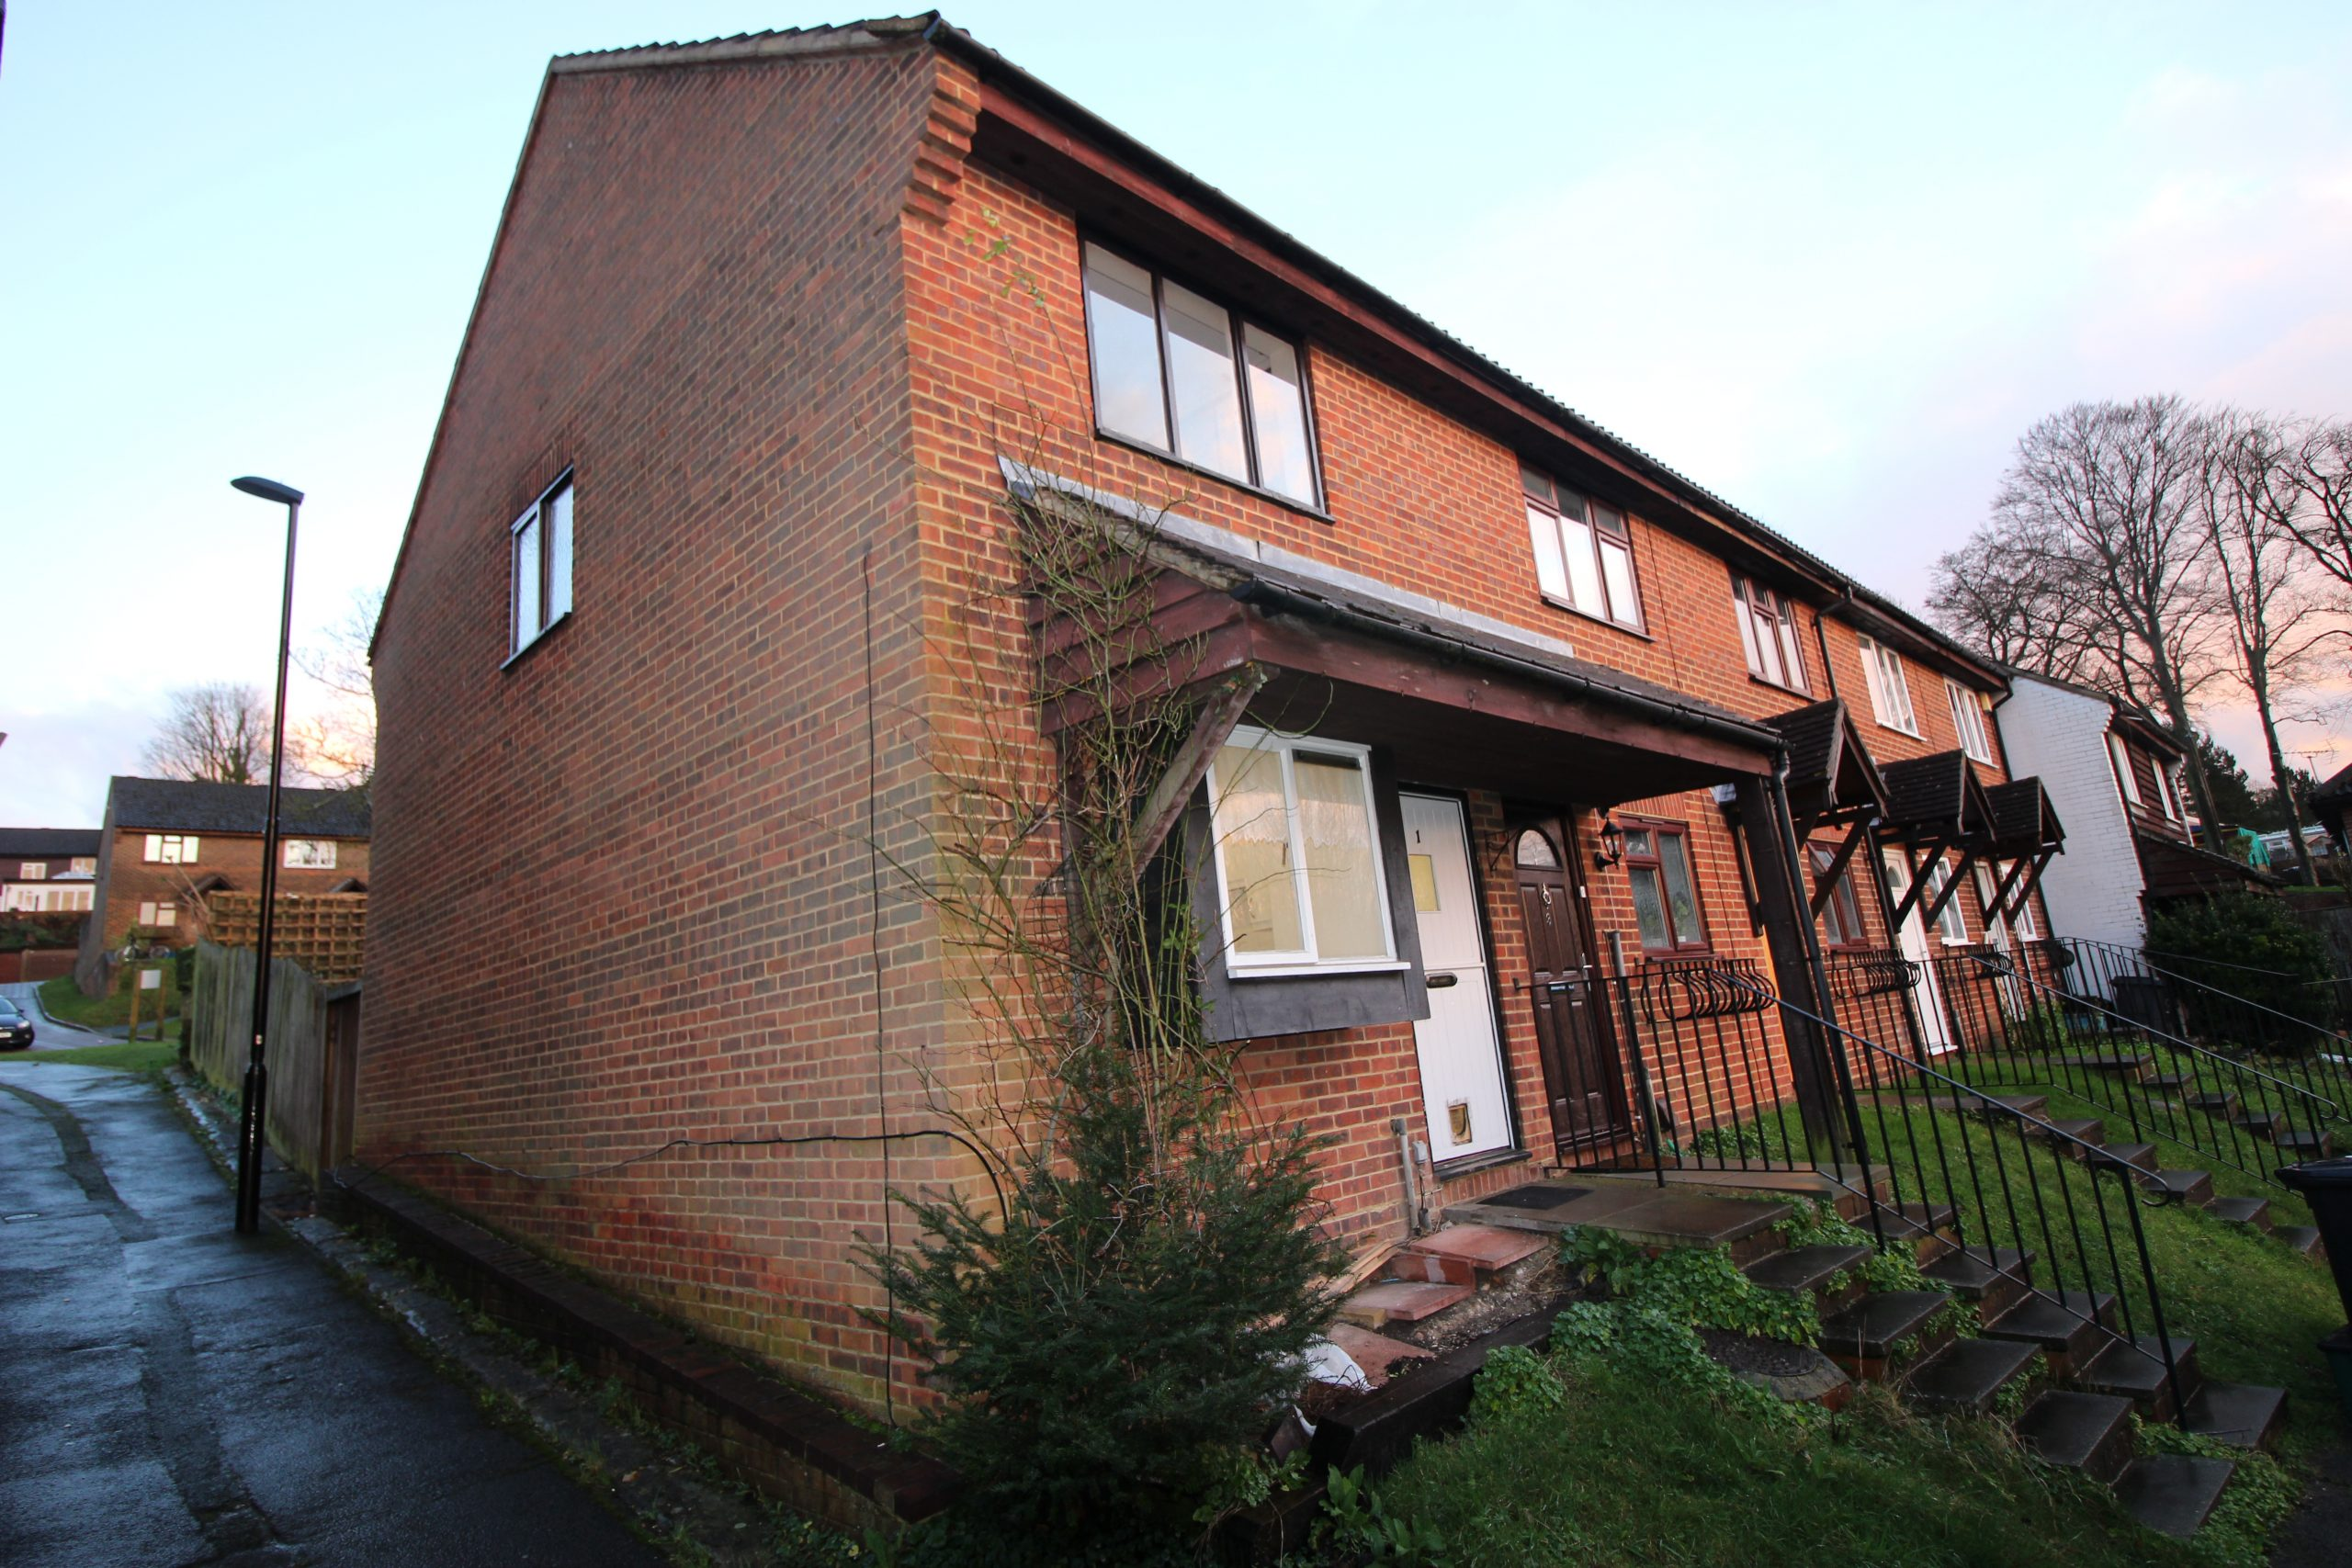 Two Bedroom End of Terrace House in Purley